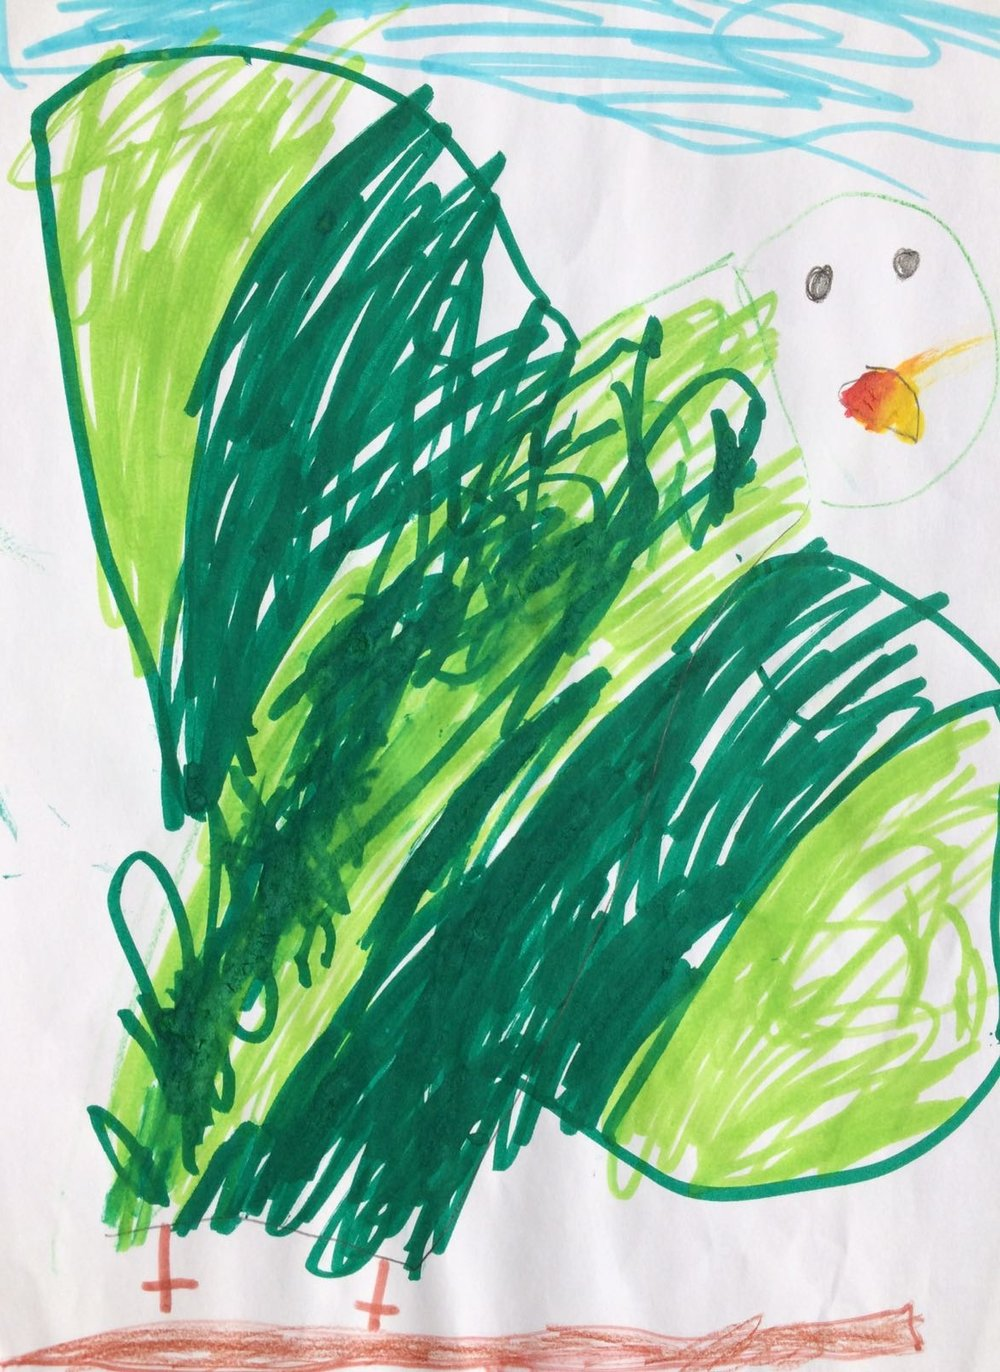 A Green Parrot, by Oscar